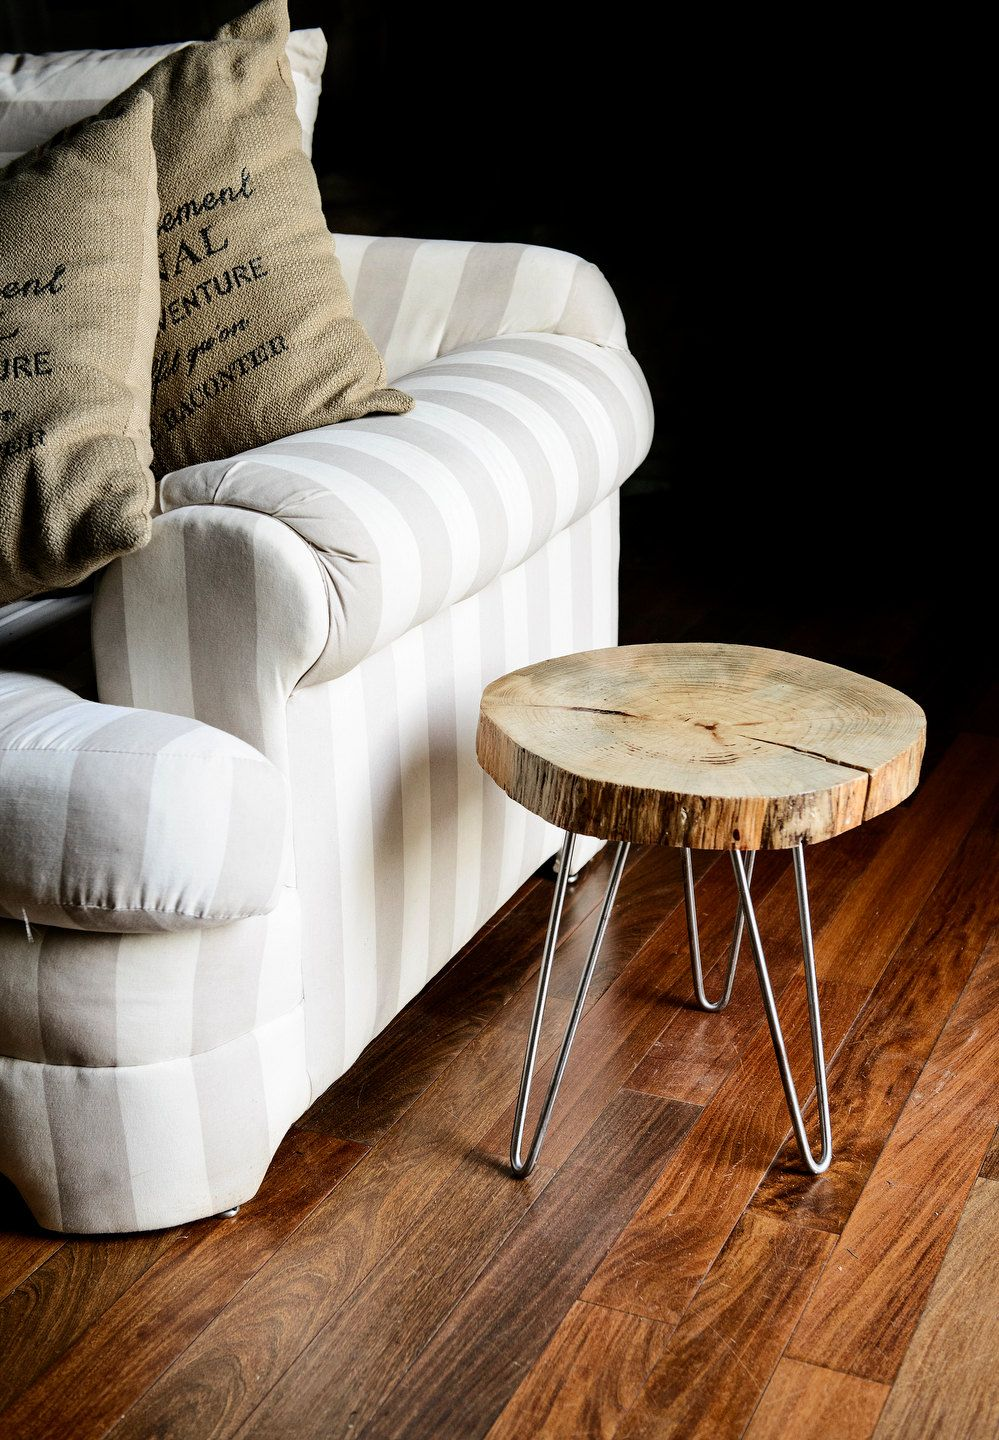 Indoor Outdoor Canary Island Pine Tree Slice Table Top Side Table On Hair Pin Legs 200 00 Via Etsy Trendy Home Decor Diy Rustic Decor Home Decor